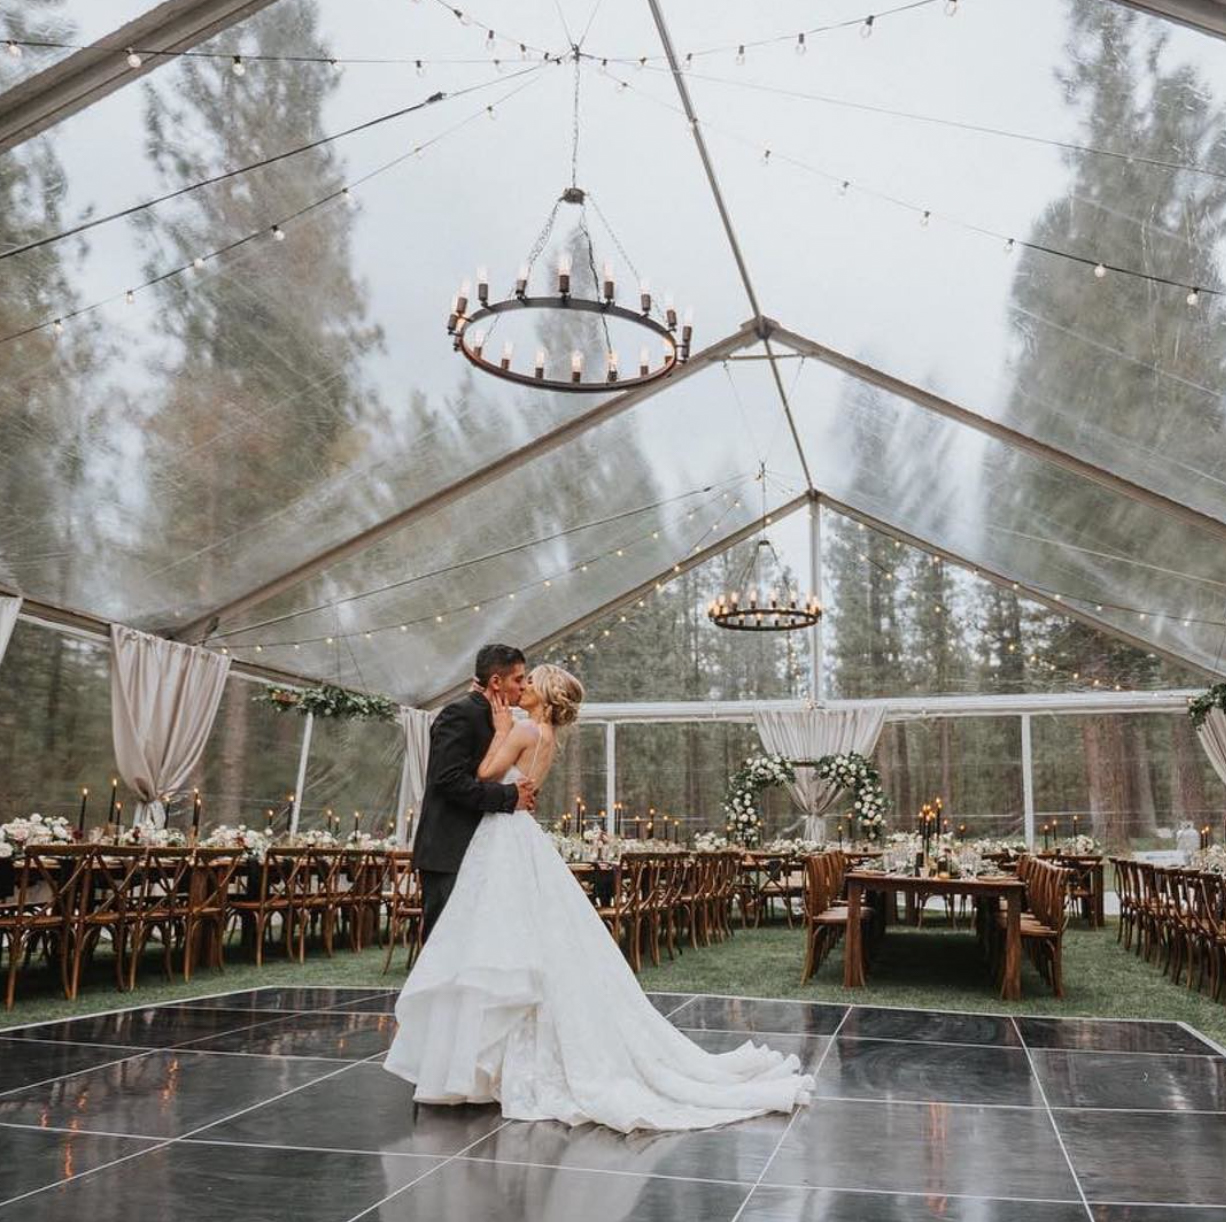 Clear marquee at wedding reception